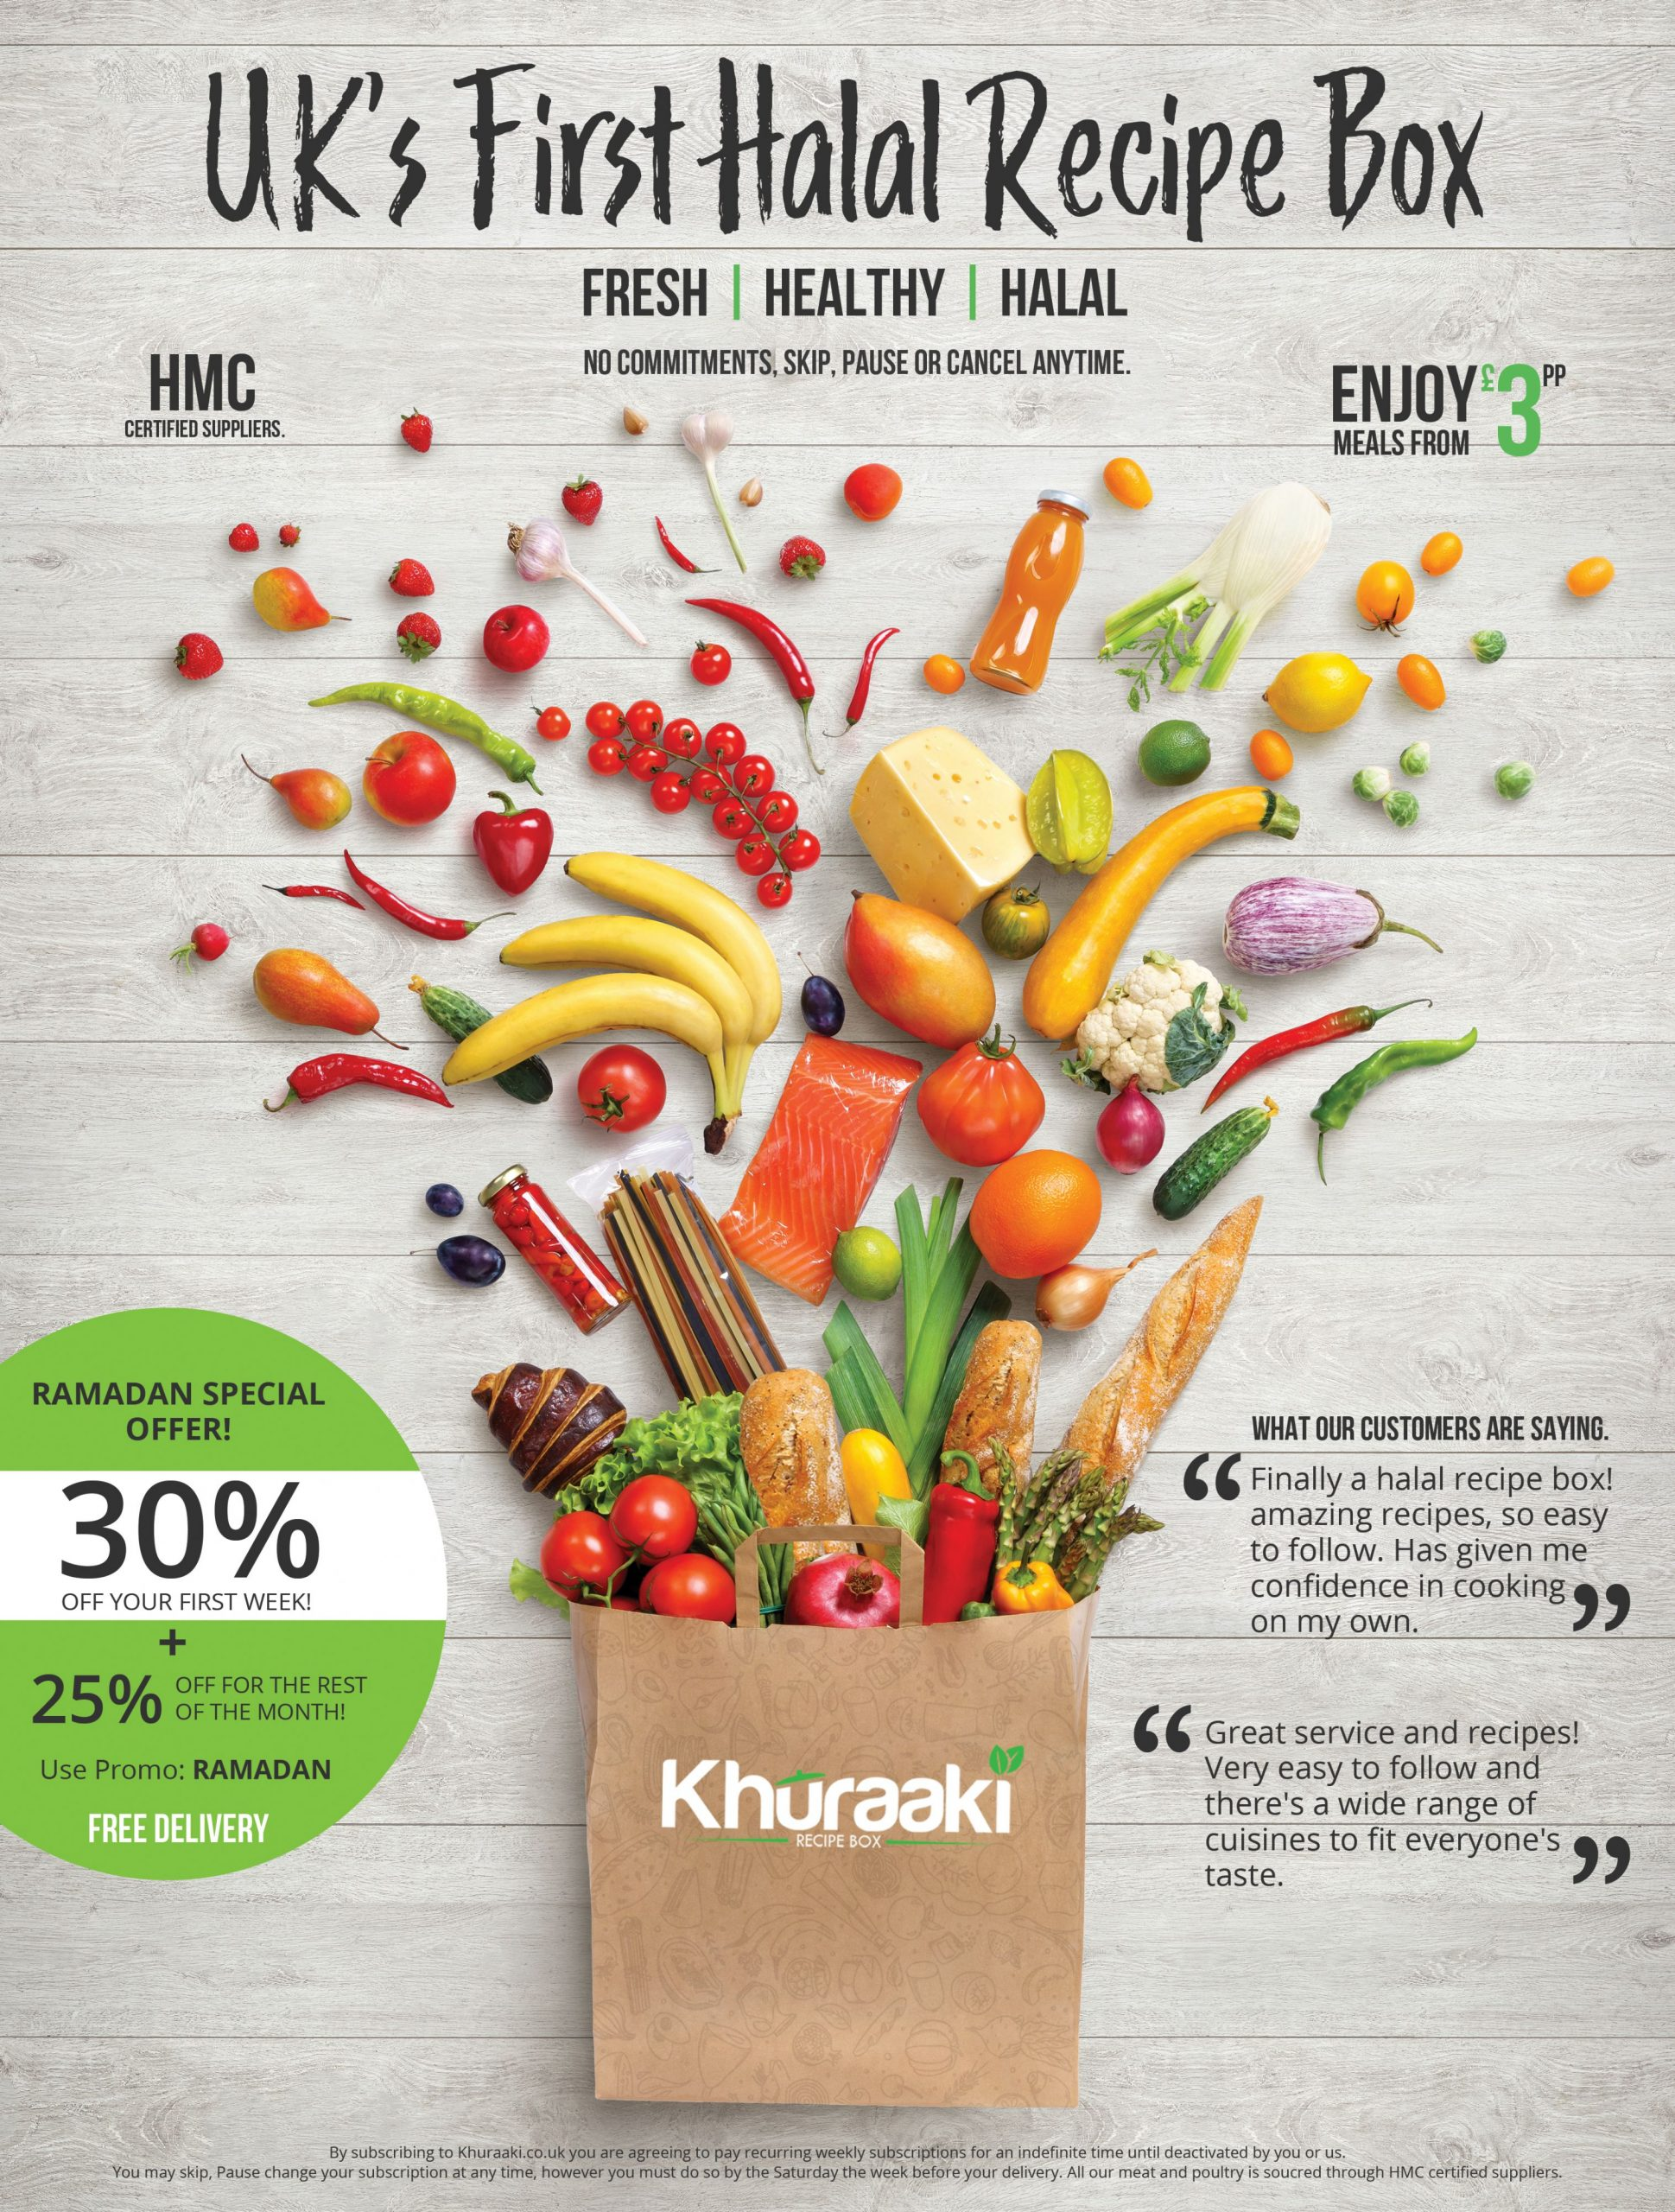 The UK's First Halal Recipe Box Company: Khuraaki - Latest, Press ...